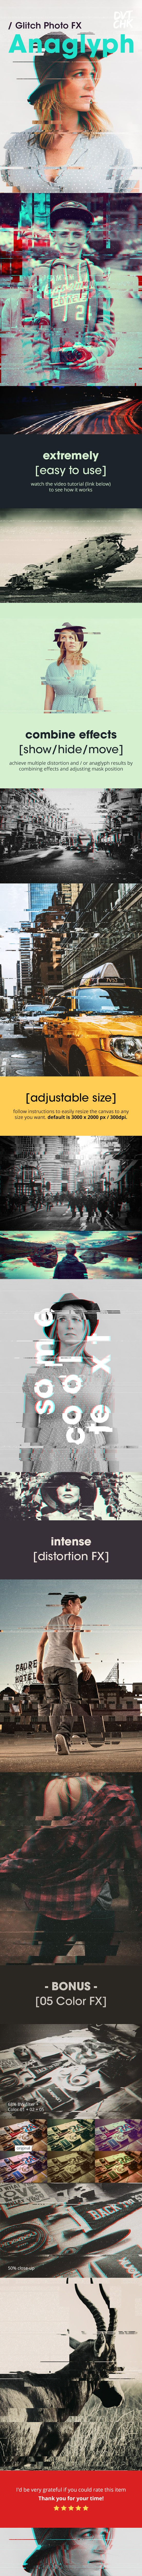 Anaglyph - Glitch Photo FX  #tv #unique #vhs • Available here → http://graphicriver.net/item/anaglyph-glitch-photo-fx/15714544?ref=pxcr